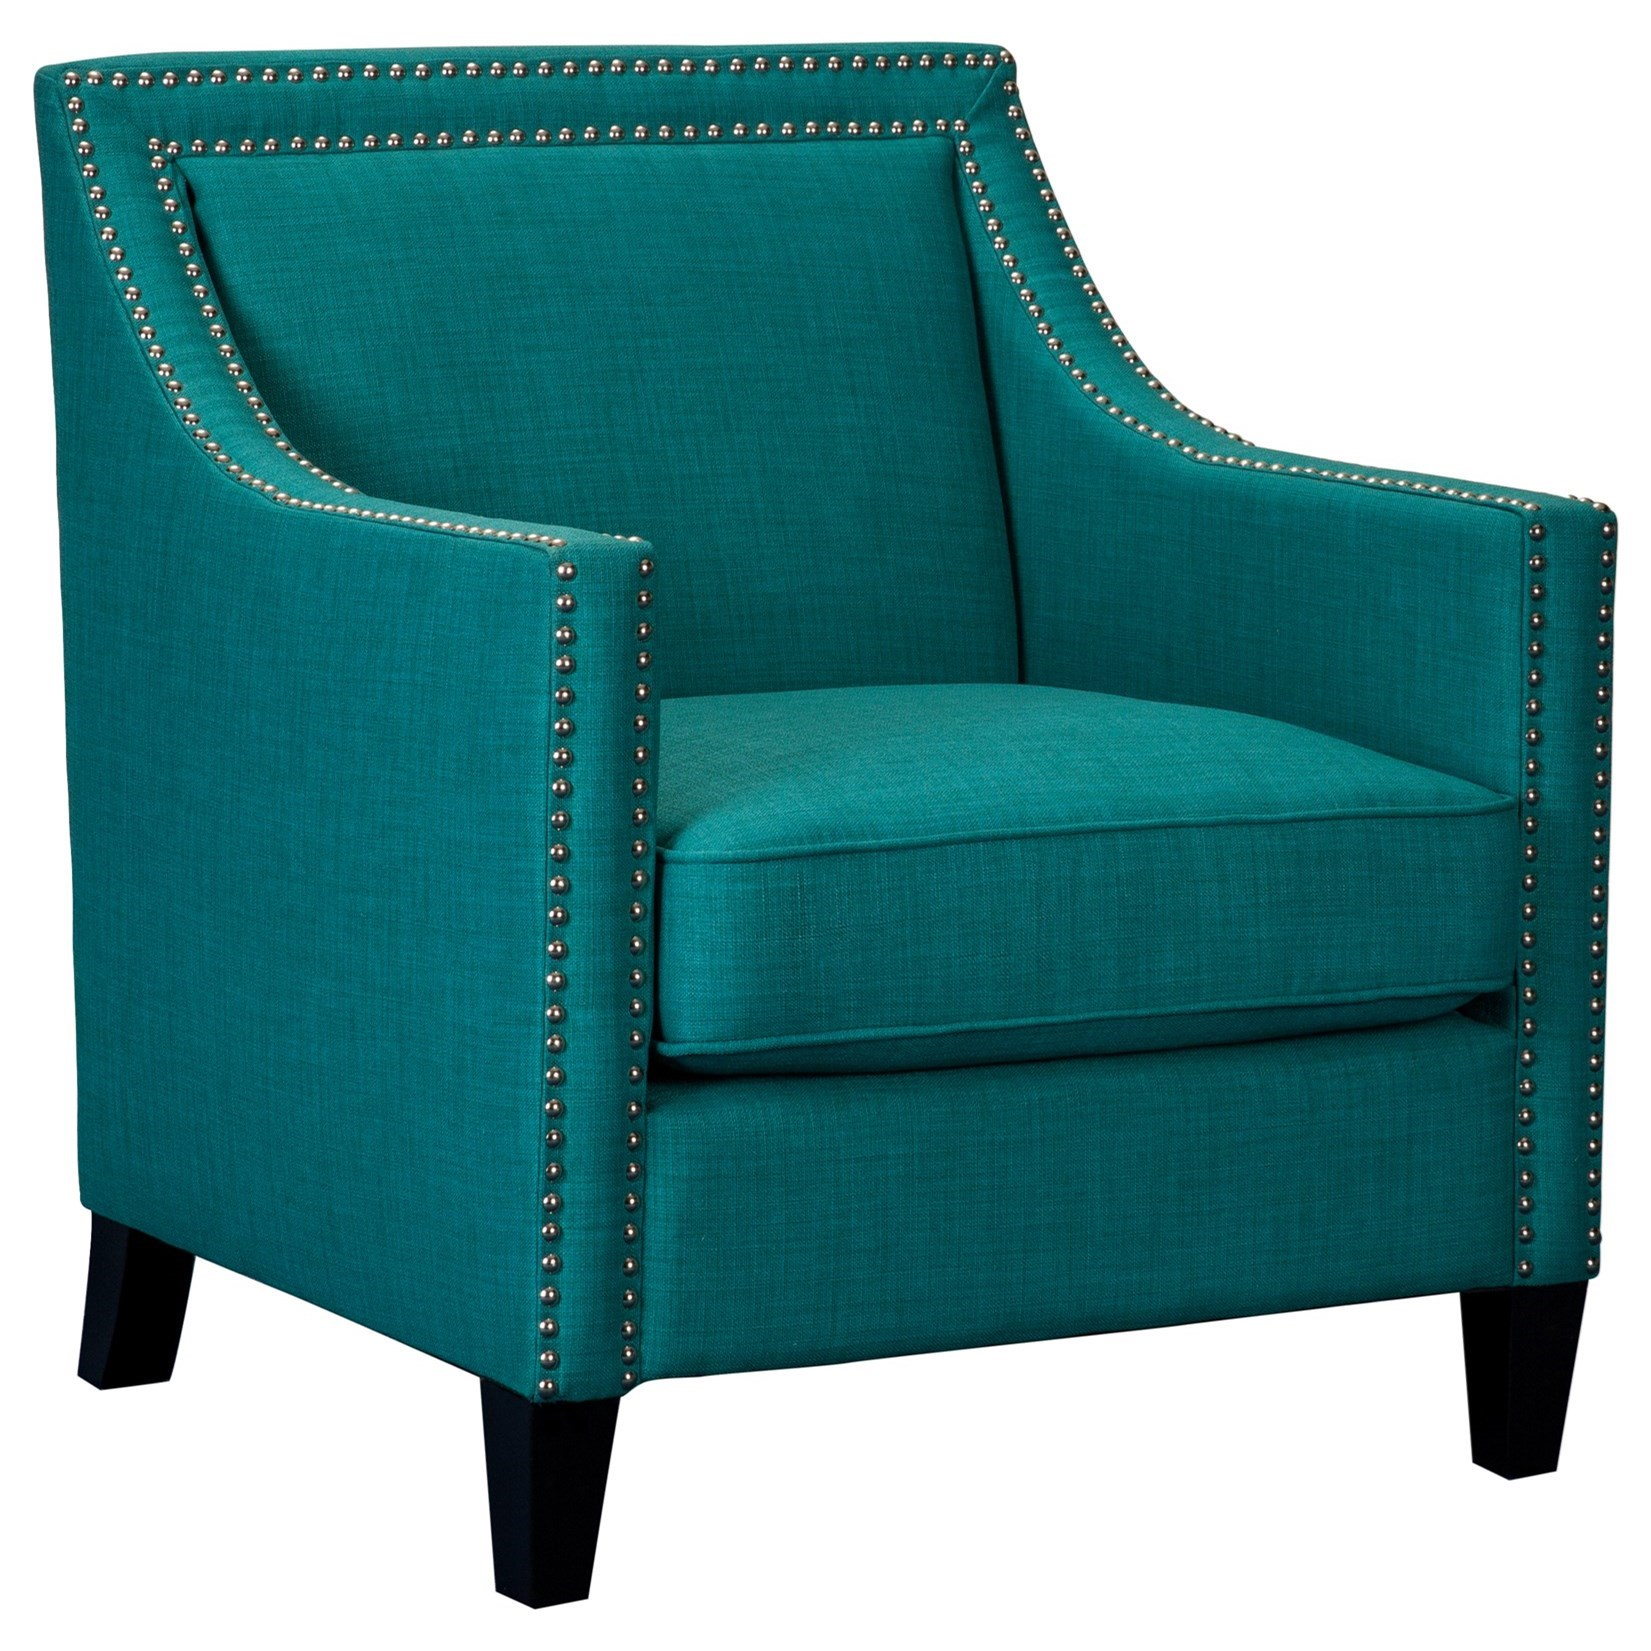 Erica Accent Chair by Elements International at Furniture Fair - North Carolina